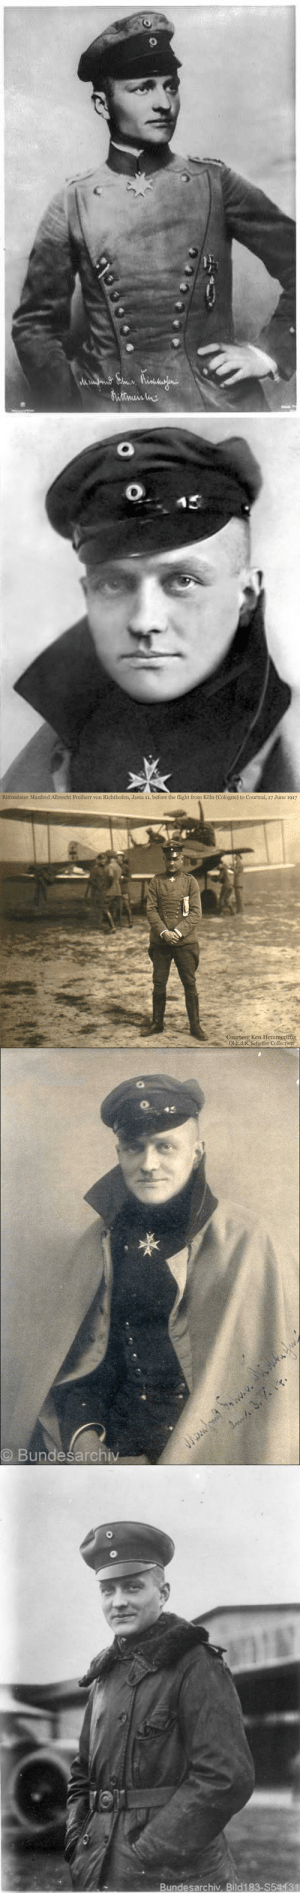 the-wolf-and-moon:  Manfred von Richthofen, The Red Baron, one of the best Aviators in history: the-wolf-and-moon:  Manfred von Richthofen, The Red Baron, one of the best Aviators in history